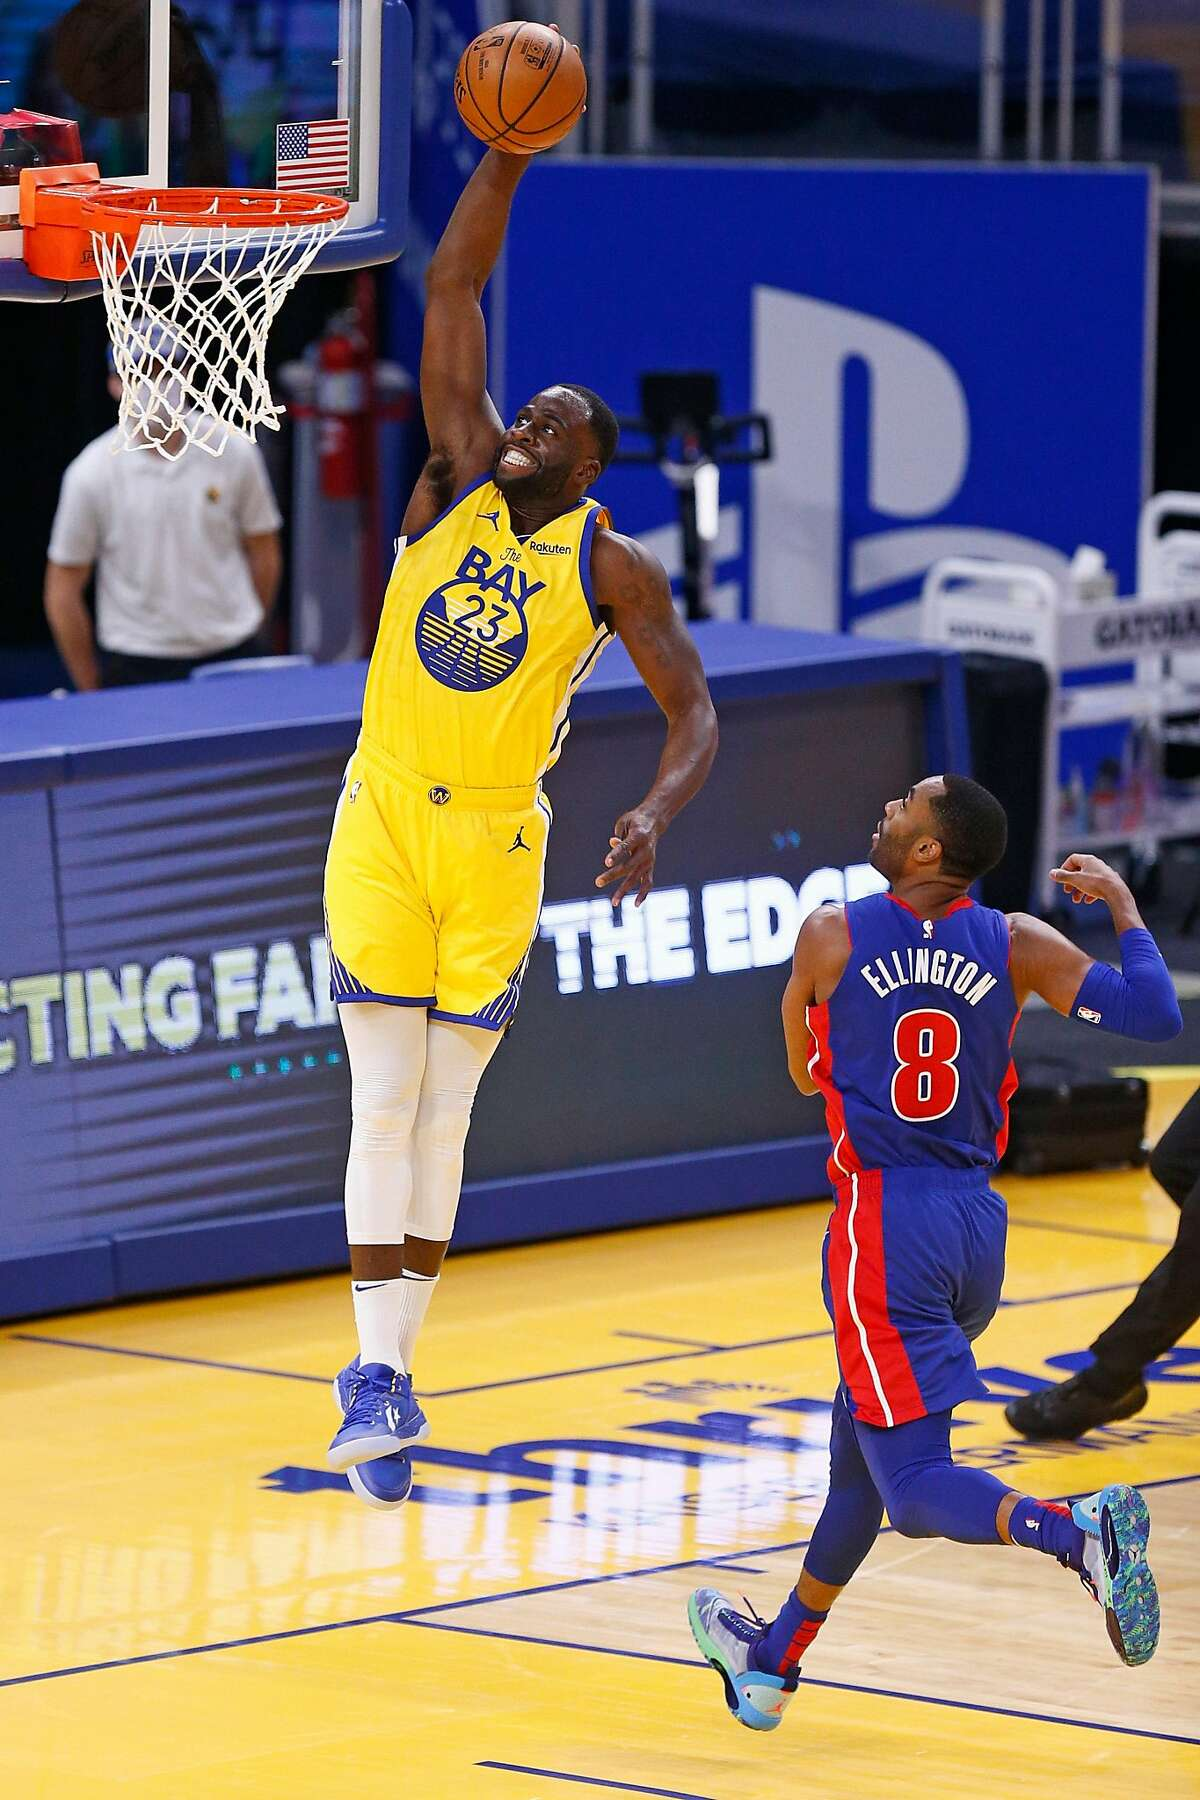 Golden State Warriors forward Draymond Green (23) dunks against Detroit Pistons guard Wayne Ellington (8) in the first period of an NBA game at Chase Center on Saturday, Jan. 30, 2021, in San Francisco, Calif.